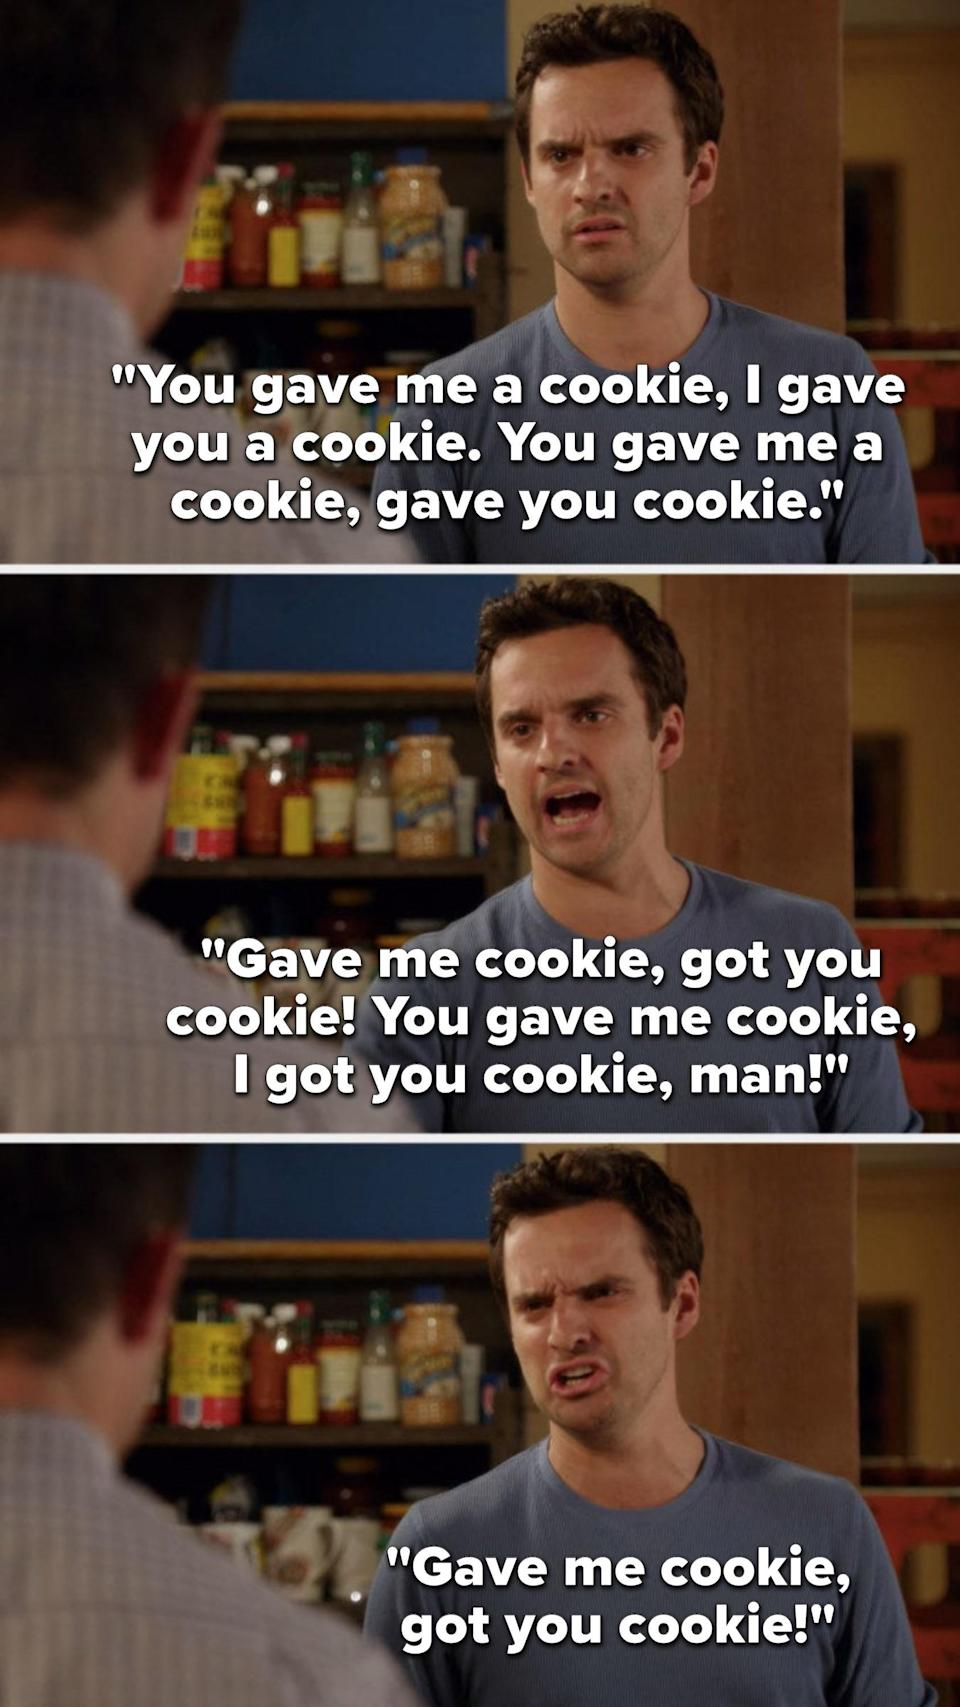 Nick says, You gave me a cookie, I gave you a cookie, you gave me a cookie, gave you cookie, gave me cookie, got you cookie, you gave me cookie, I got you cookie, man, gave me cookie, got you cookie